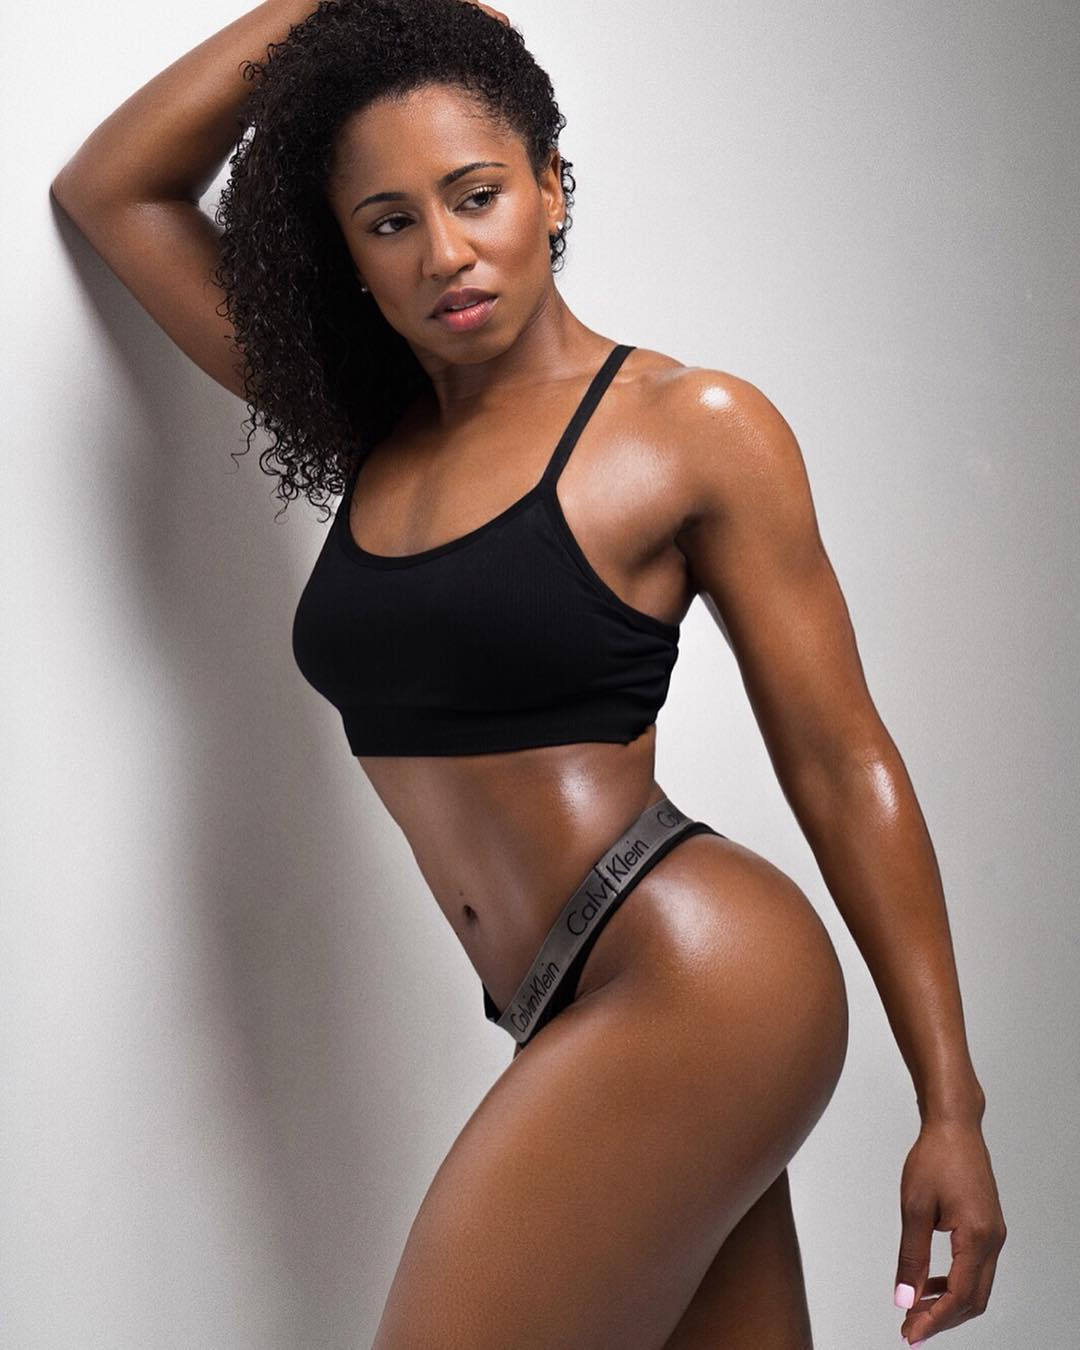 Meet Pamela Ricardo Of Body By Pam In Smyrna